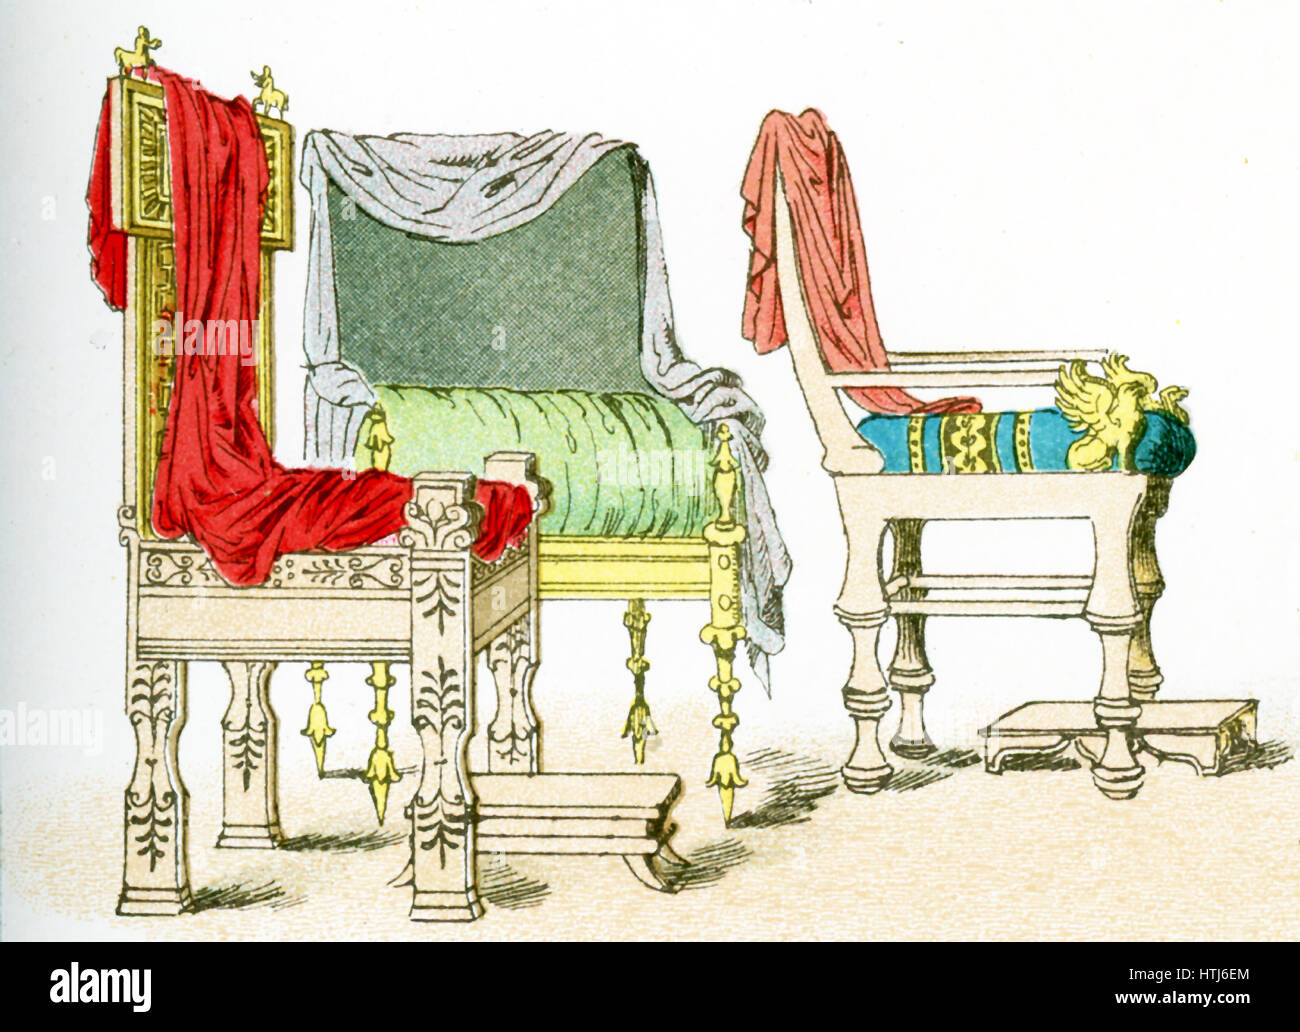 The illustration here shows three ancient Greek chairs.The illustration dates to 1882. - Stock Image